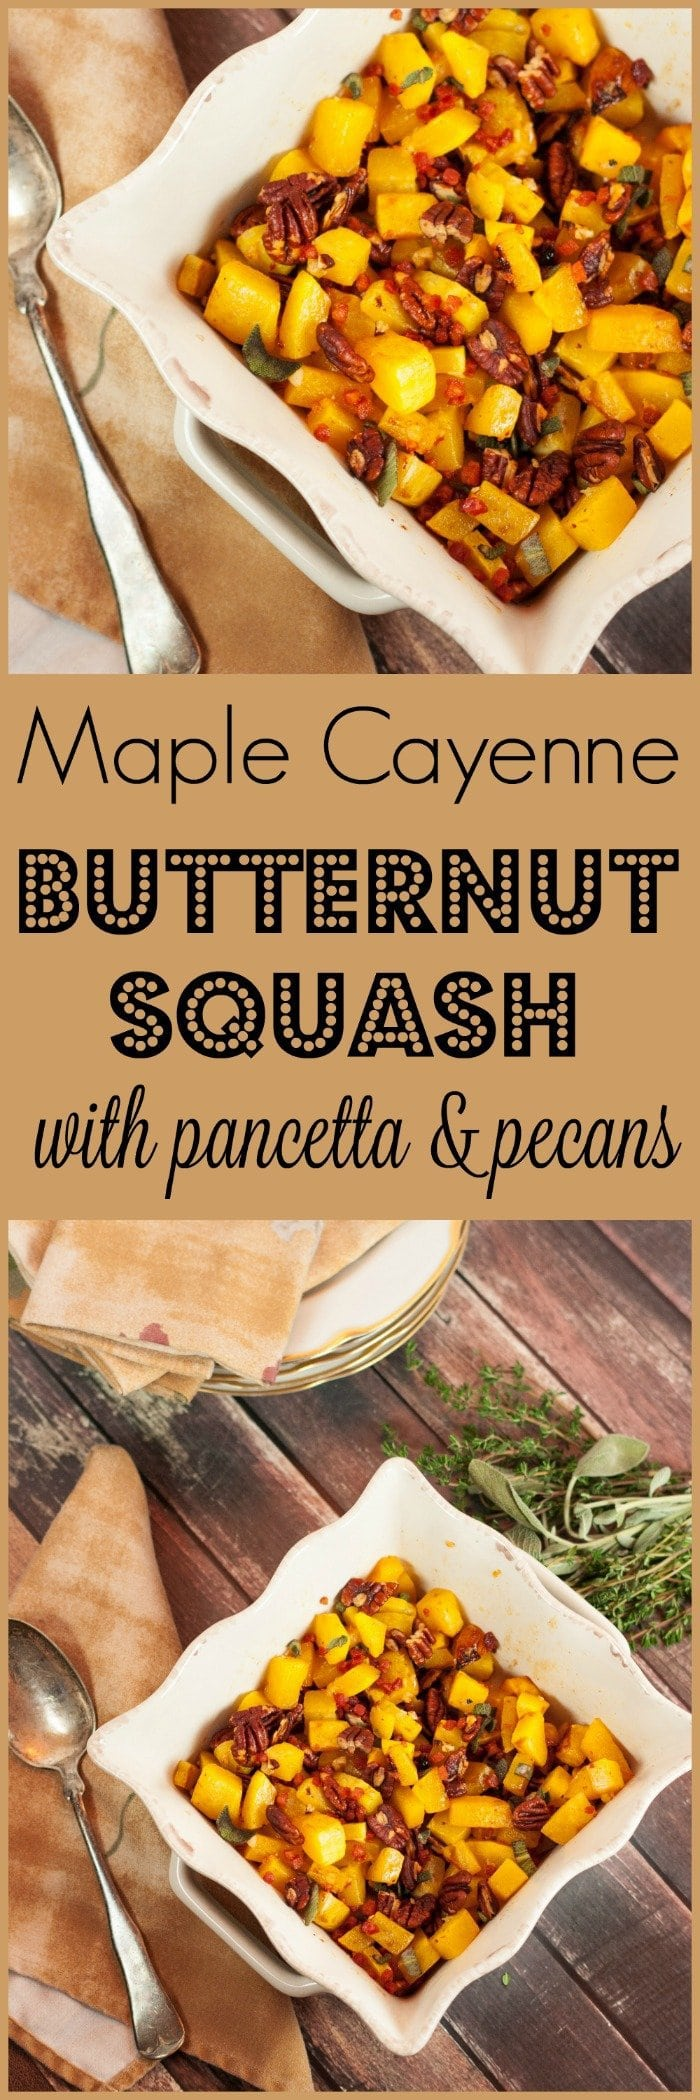 Maple Cayenne Butternut Squash with Pancetta and Pecans | www.homeandplate.com | This maple butternut squash has a kick of cayenne and is paired with the crunch of toasted pecans and salty pancetta.